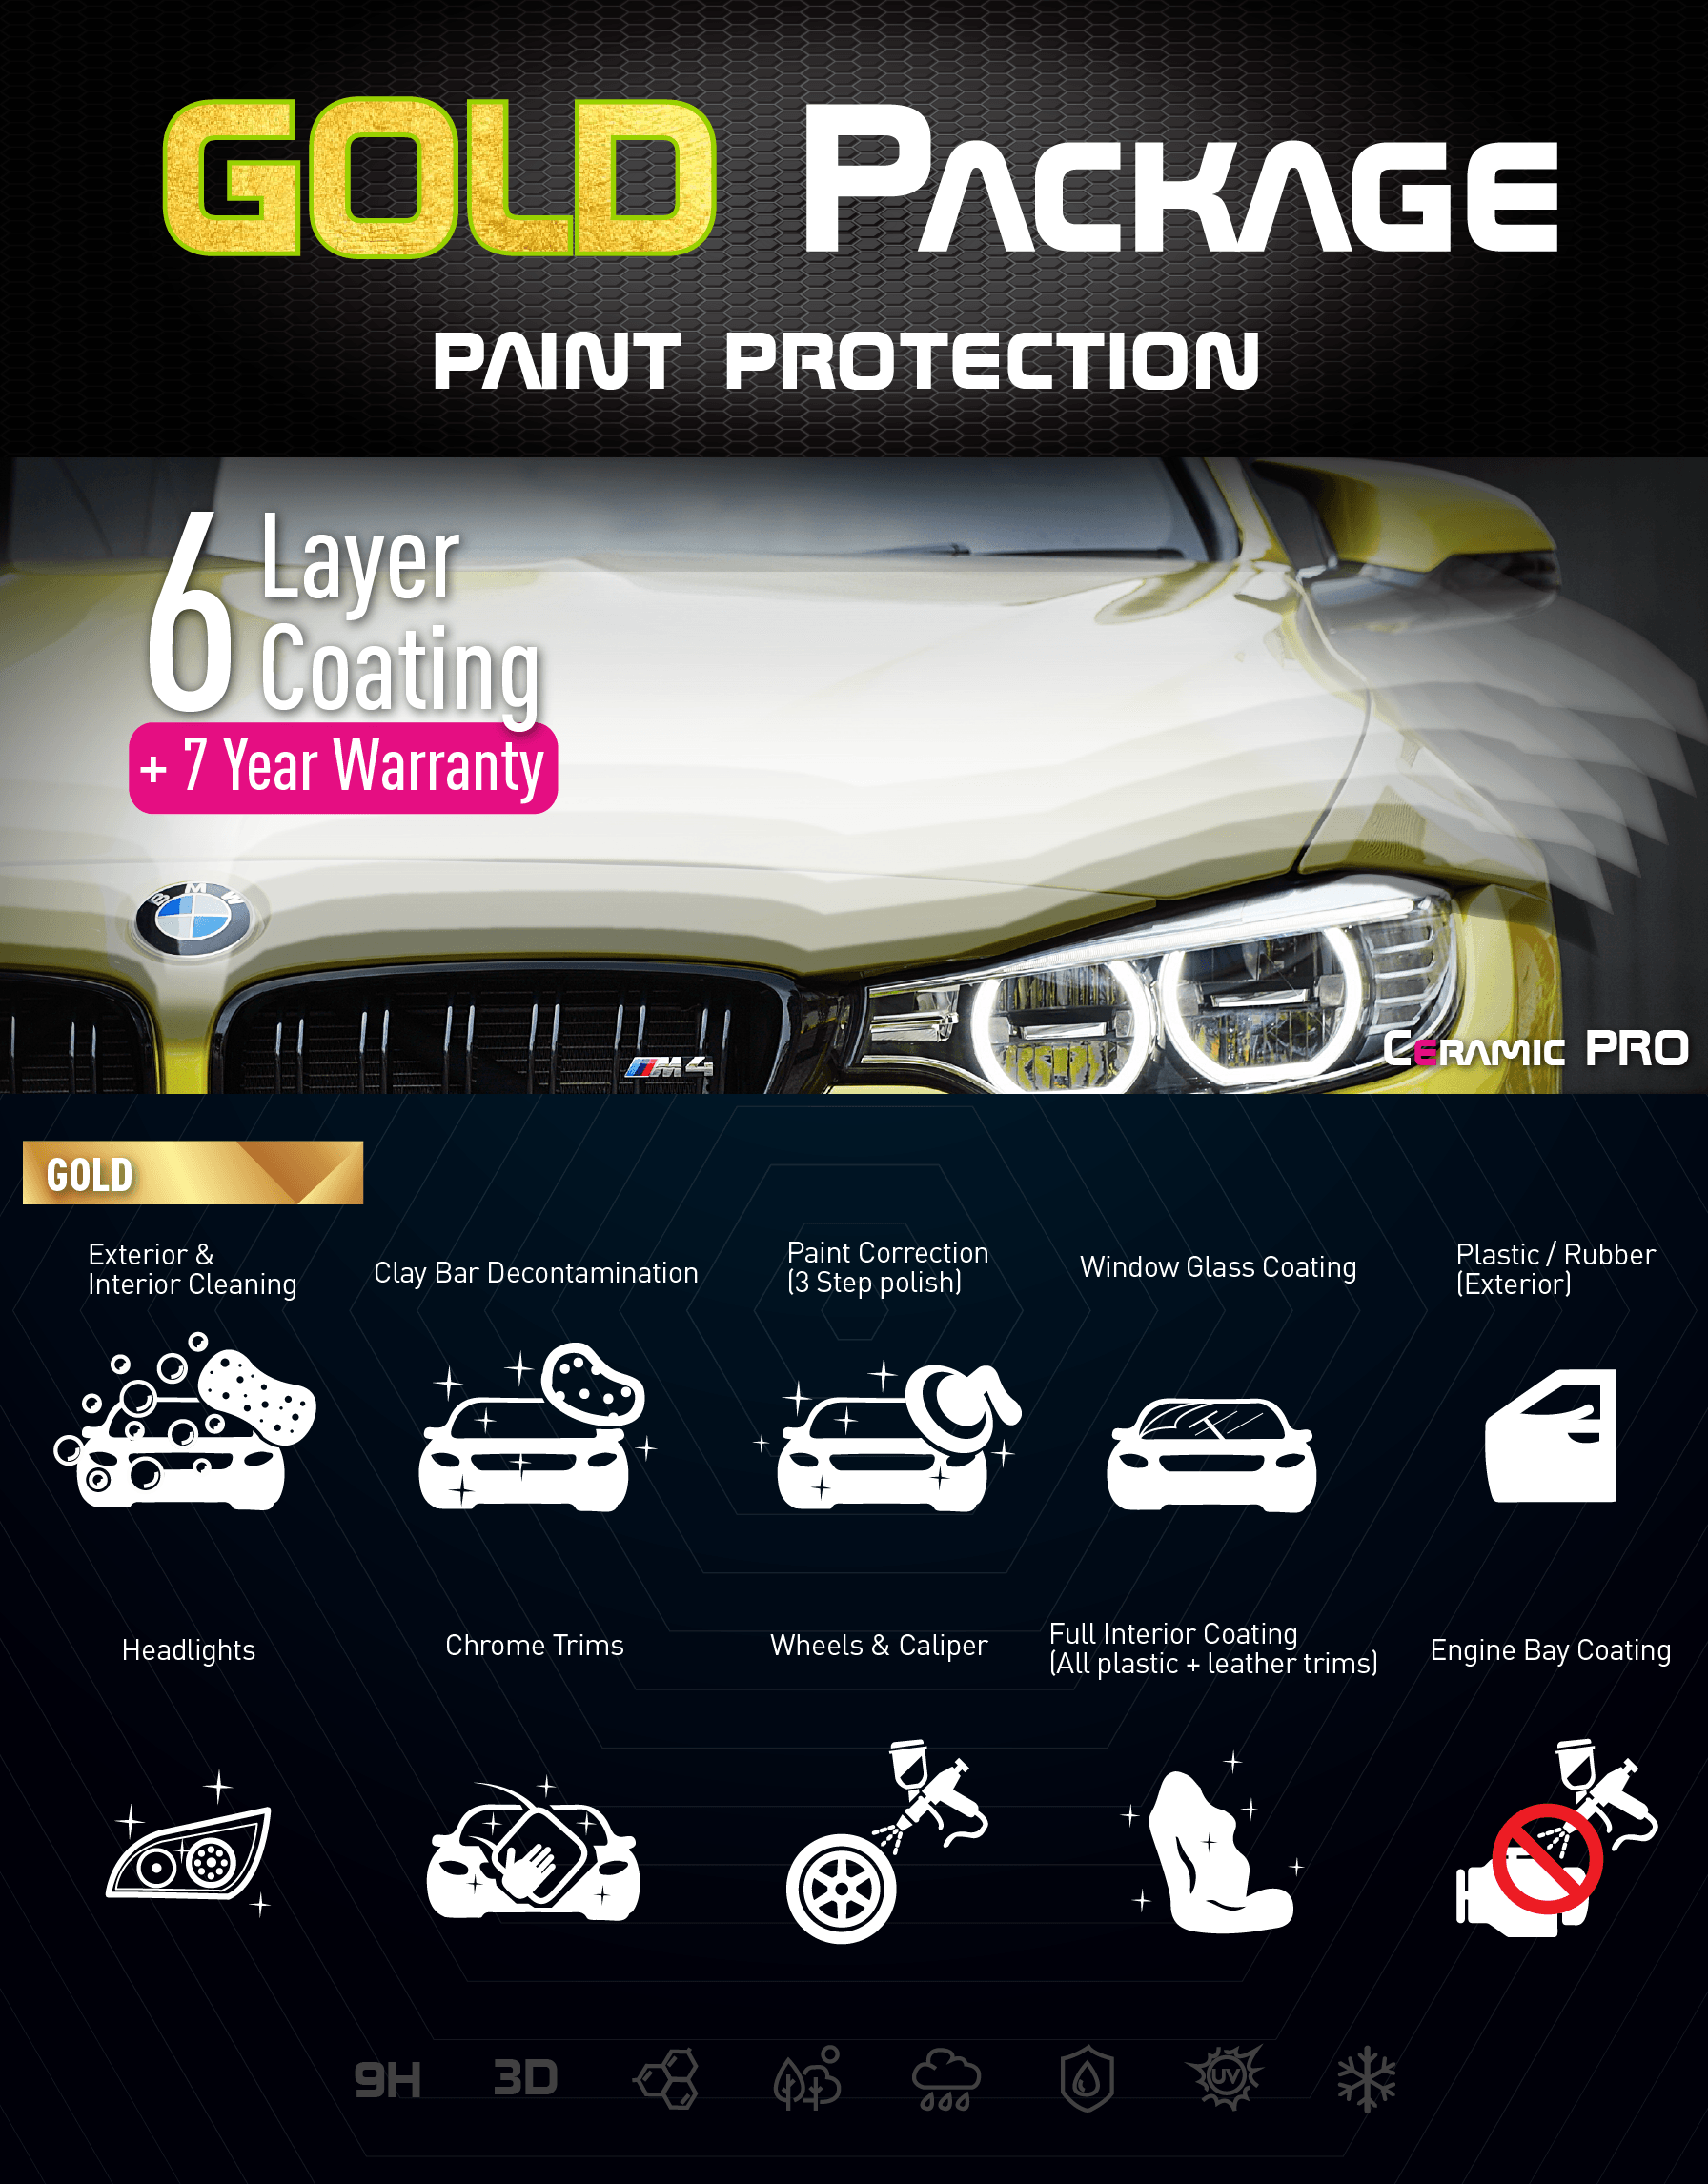 Ceramic Pro Malaysia - Gold Package Paint Protection